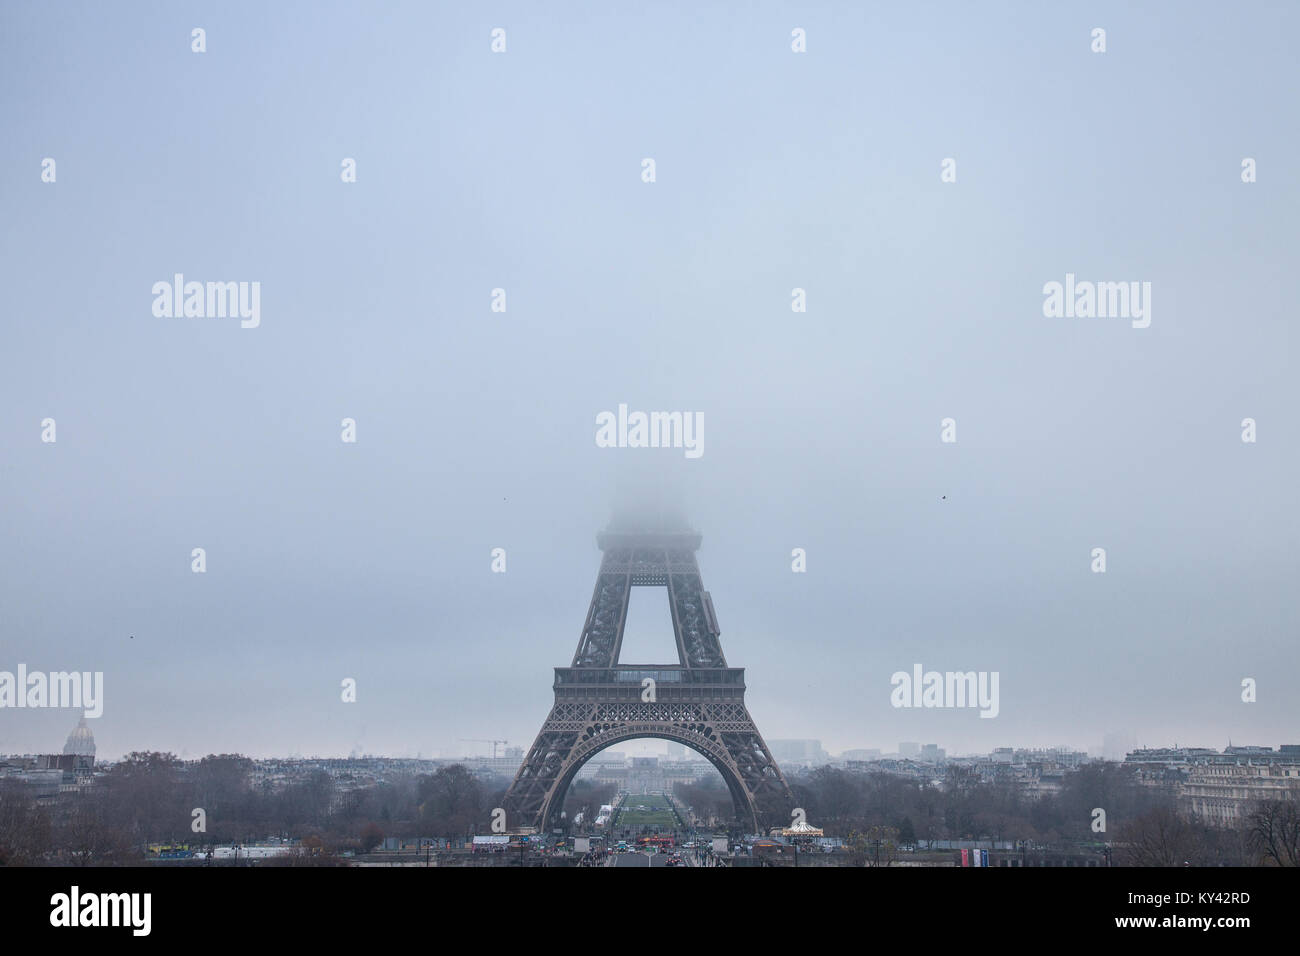 PARIS, FRANCE - DECEMBER 19, 2017: Panoramic view of the Eiffel Tower seen from Trocadero terraces, the top of the - Stock Image